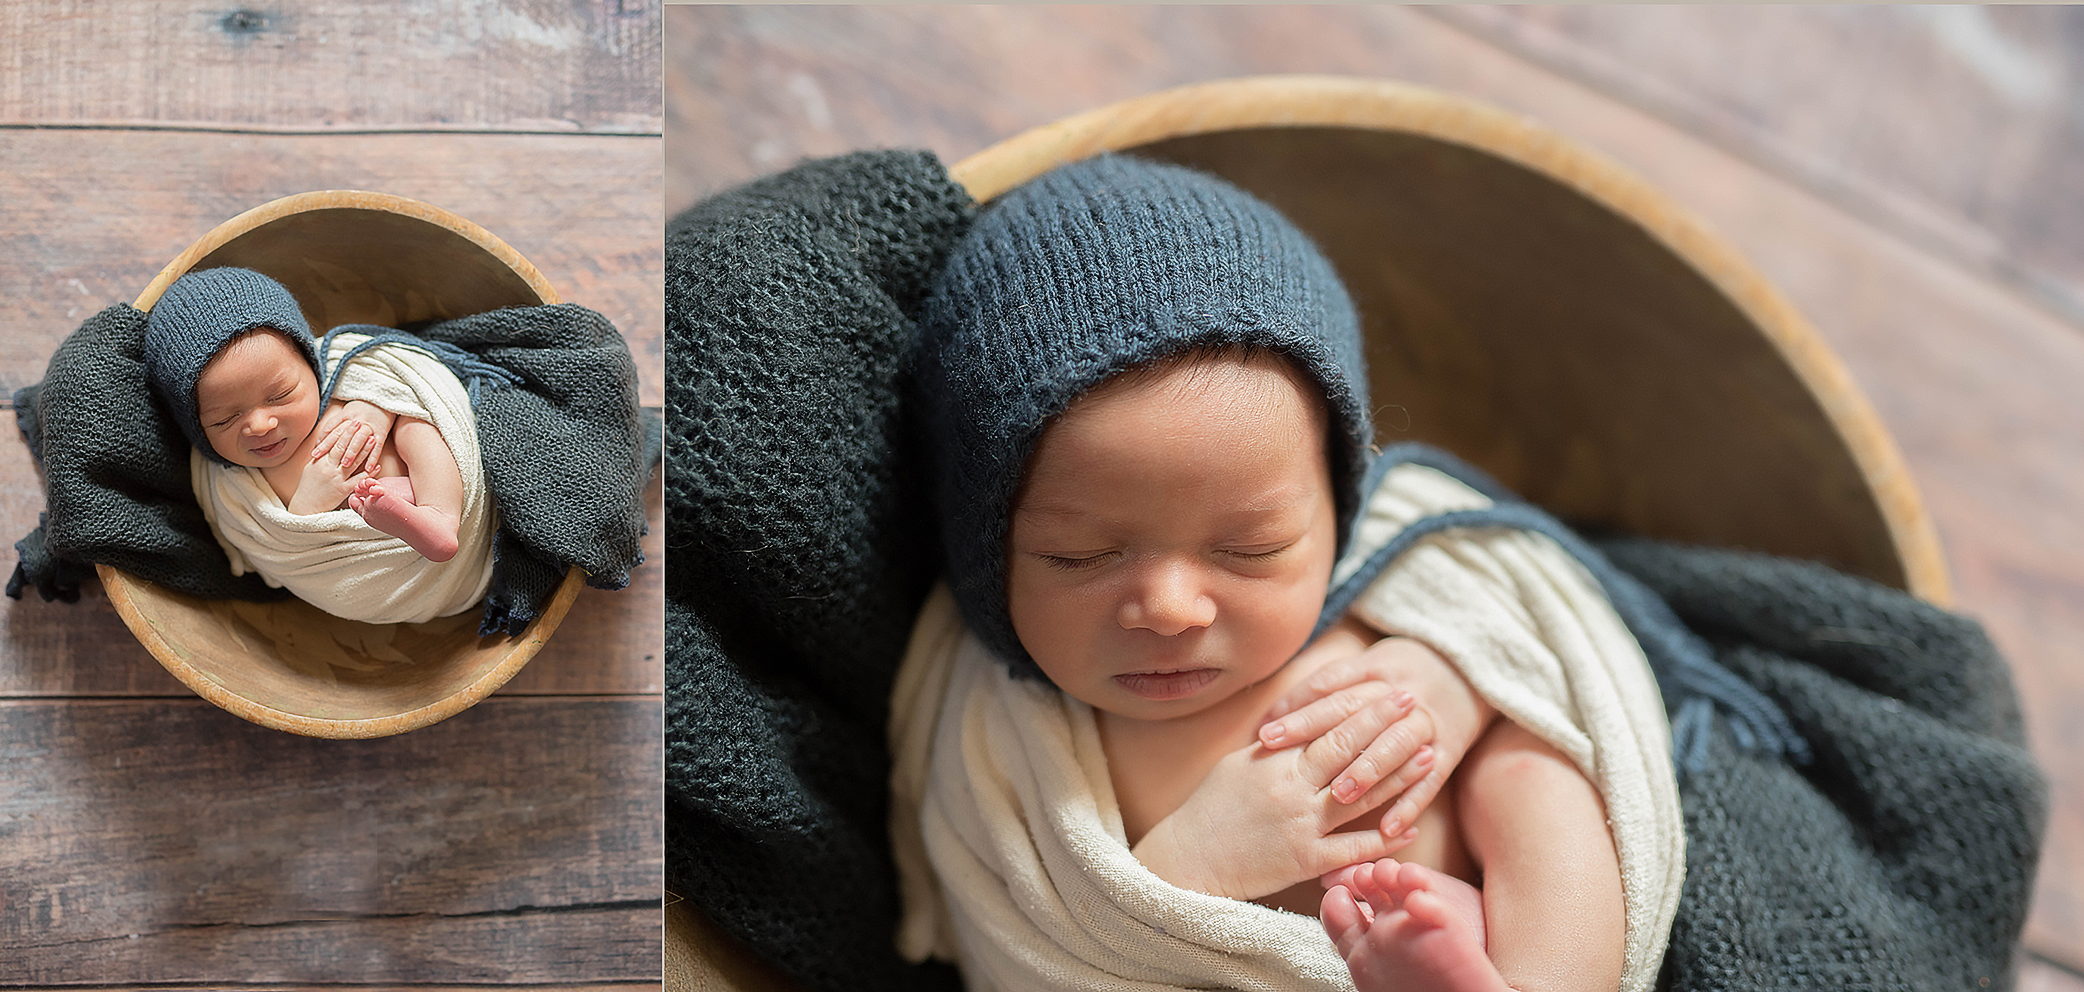 Organic, natural, creative, Infant Photography in Pittsburgh. Julie Bradley is Pittsburgh